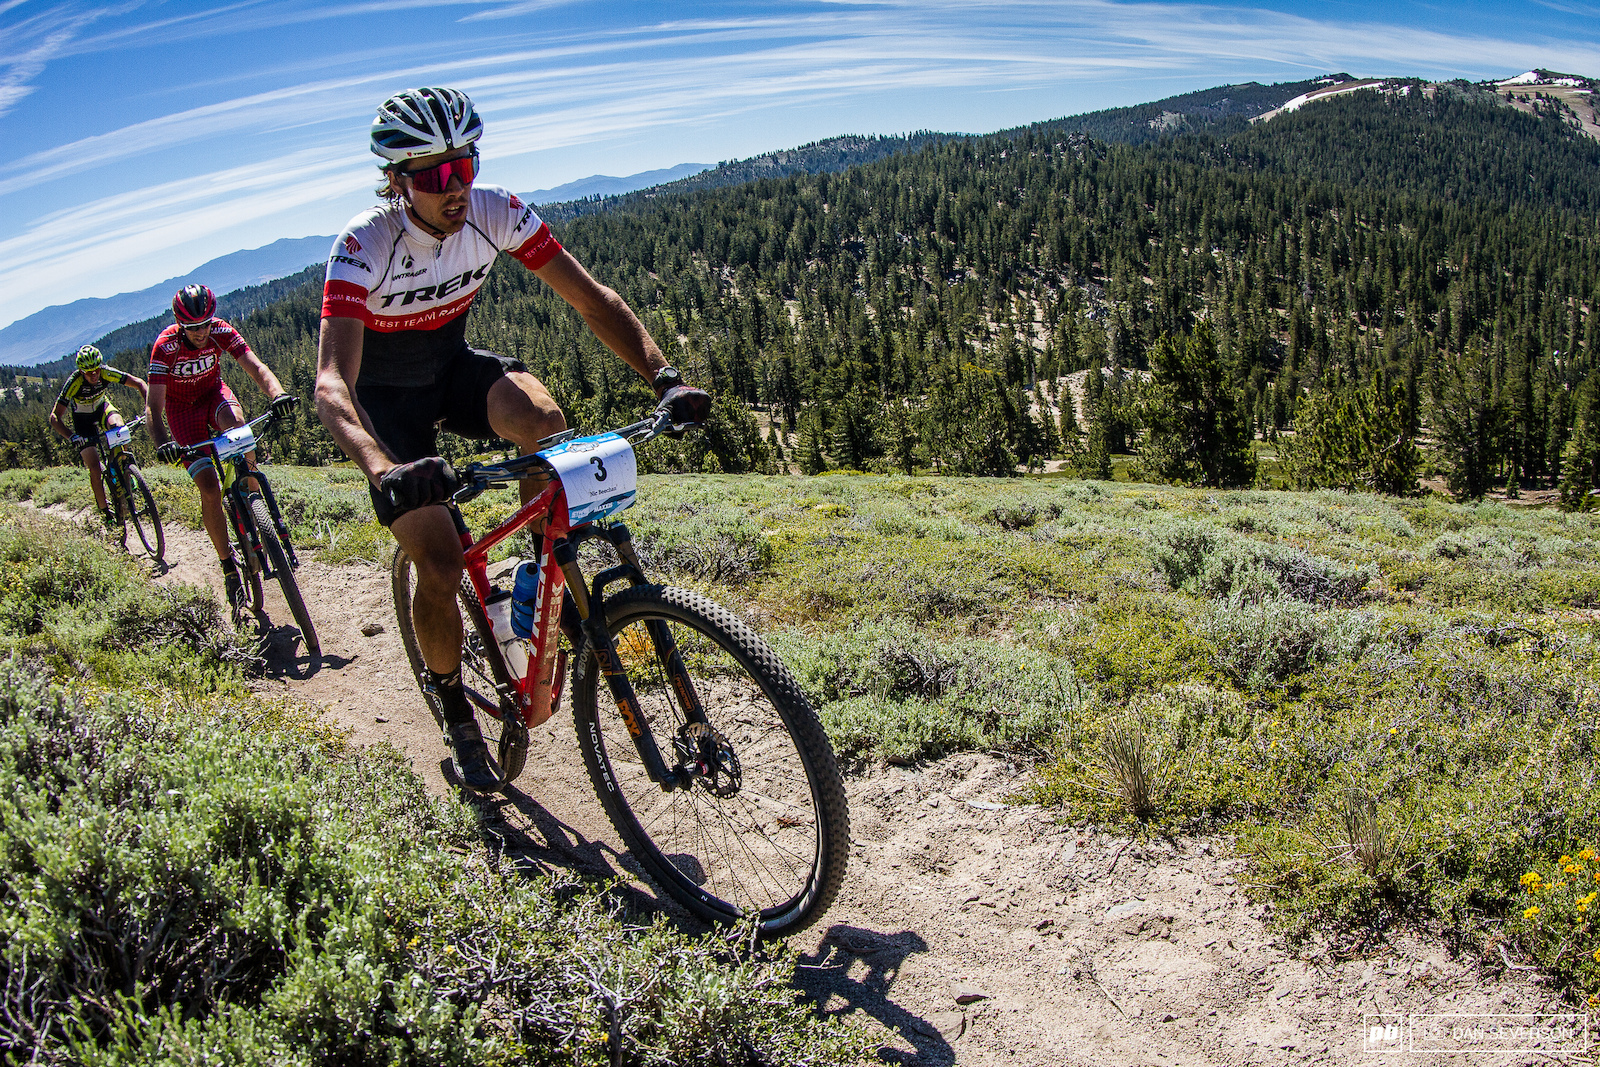 Nic Beechan is no stranger to high altitude and steep climbs.